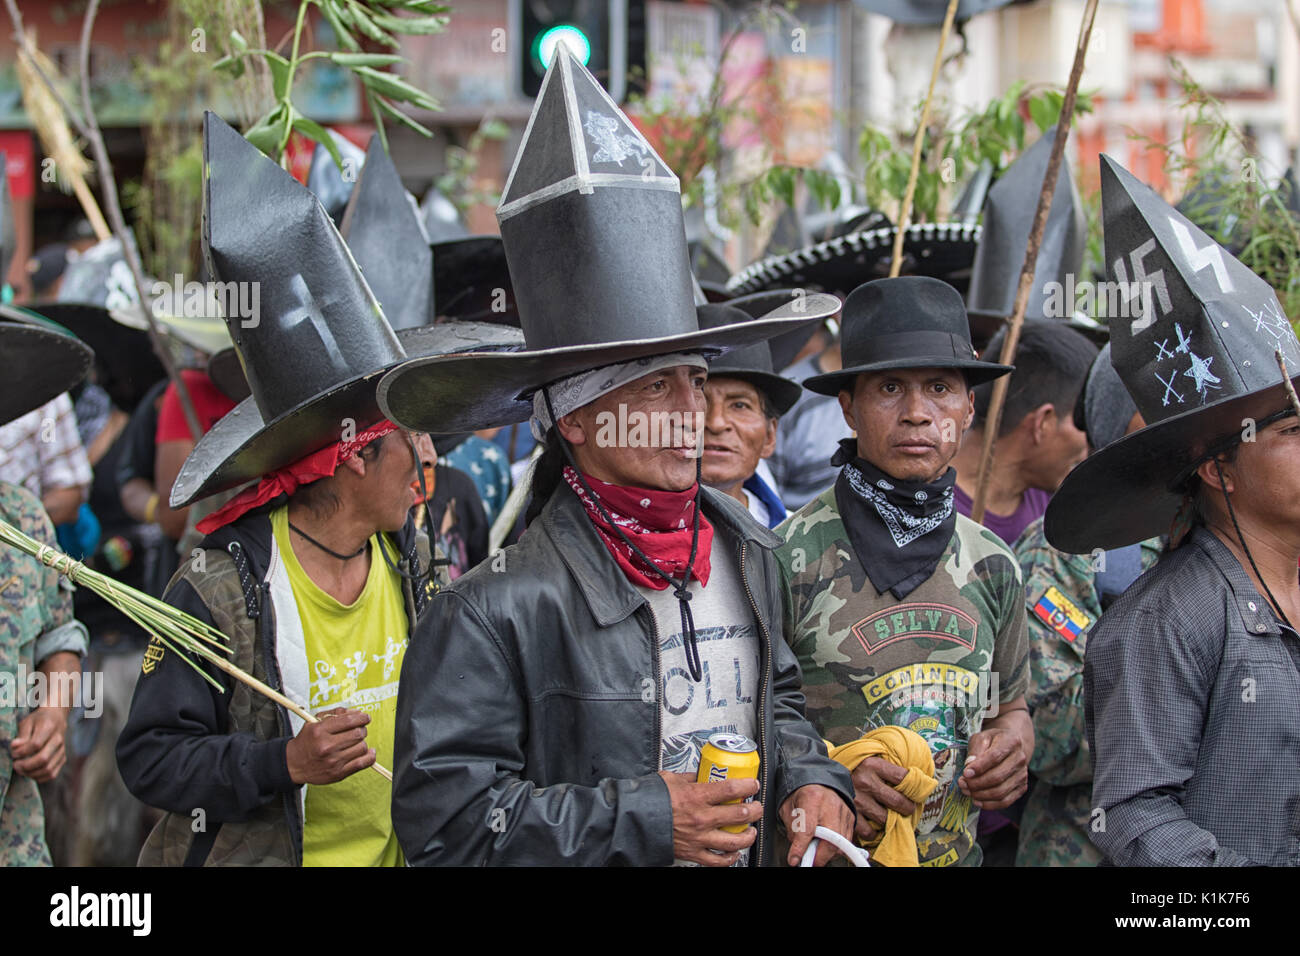 Inti Raymi annual celebration of the summer solstice in Cotacachi Ecuador - Stock Image